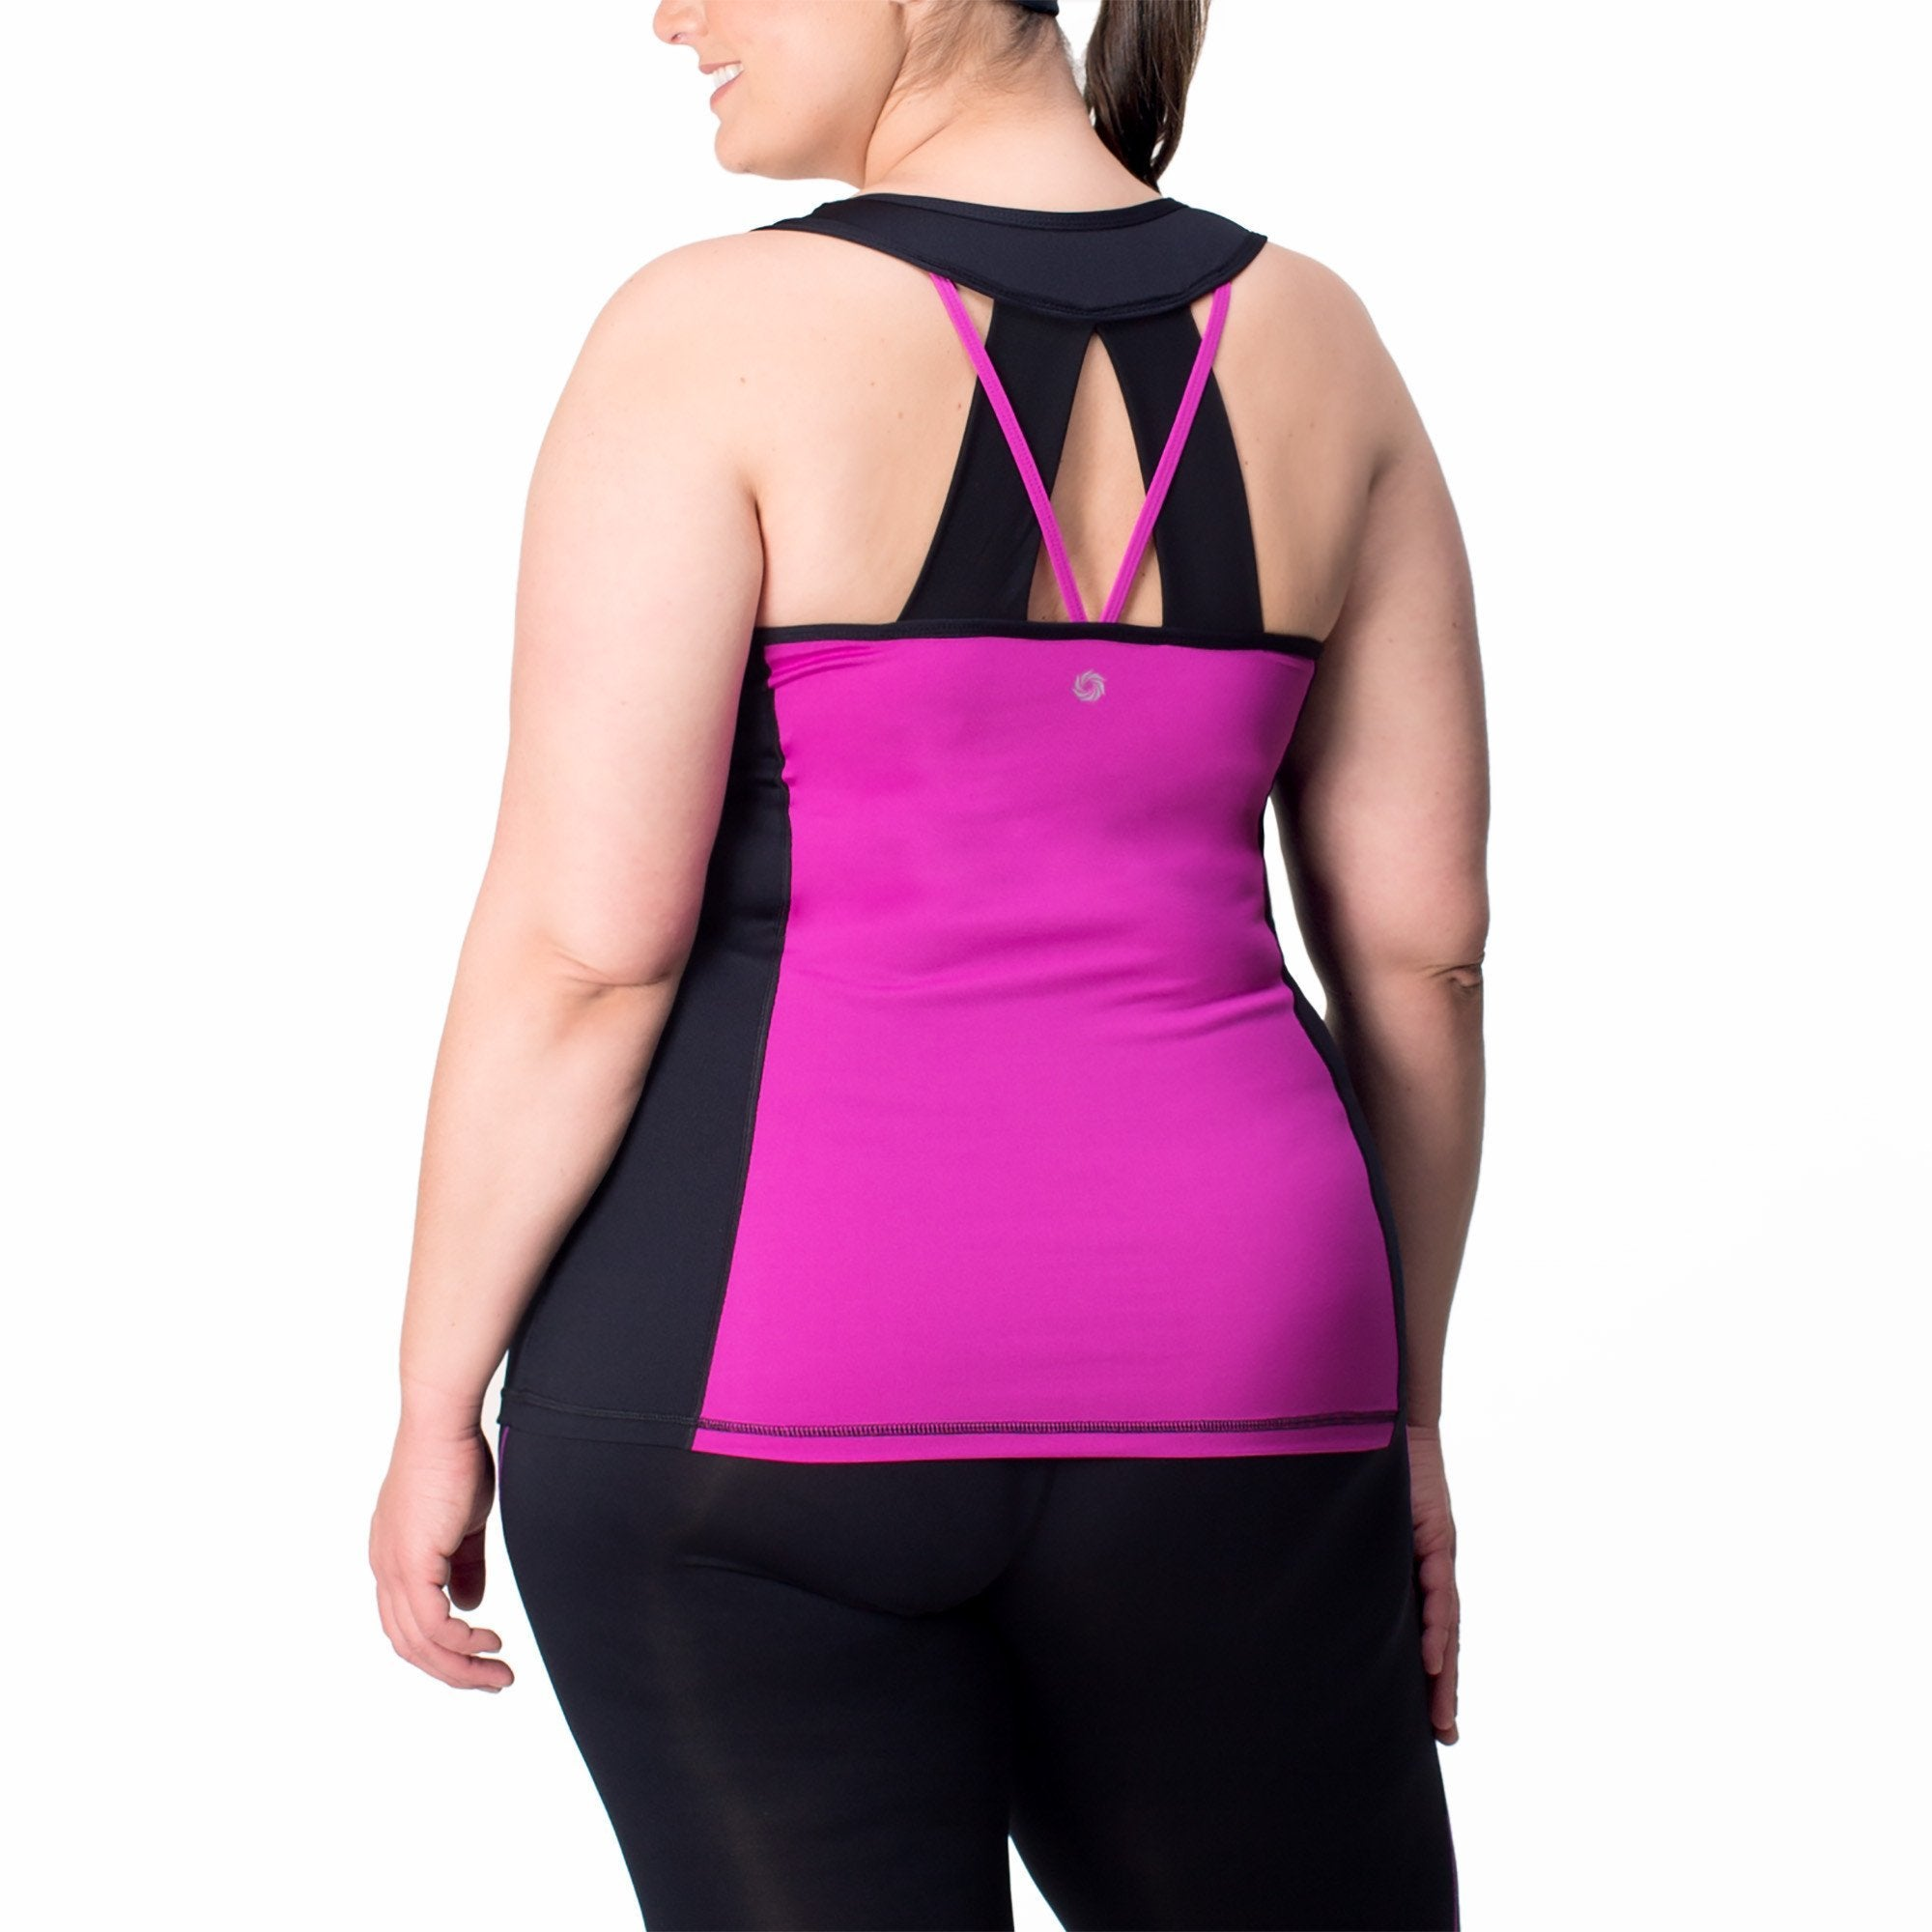 Juliana Tank w/ Bra - Rainbeau Curves, , activewear, athleisure, fitness, workout, gym, performance, womens, ladies, plus size, curvy, full figured, spandex, cotton, polyester - 1